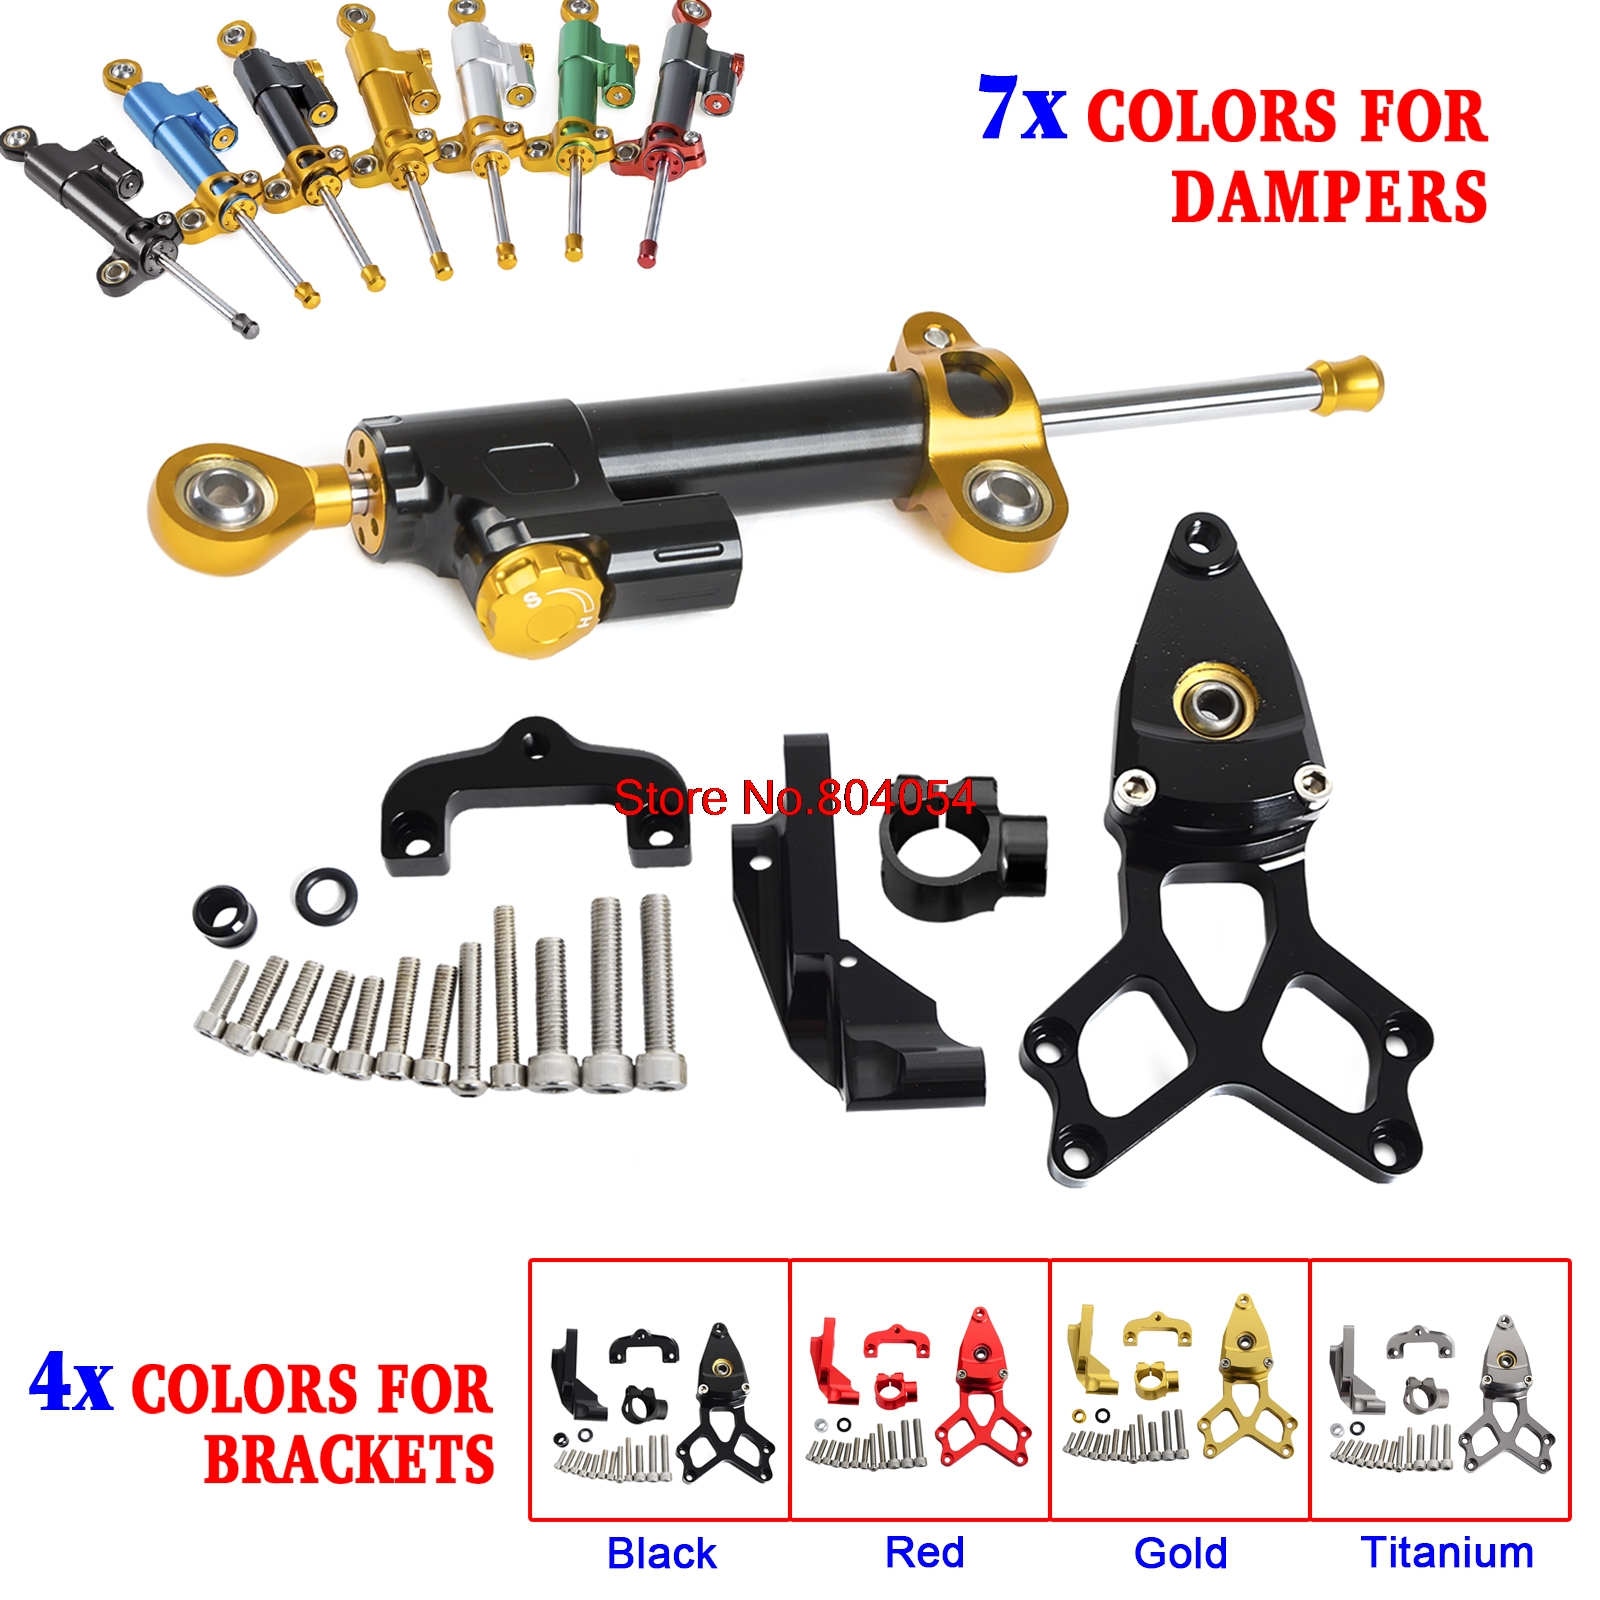 Steering Damper & Bracket Mounting Kit For Honda CBR1000RR ABS SP 2008 - 2016 2010 2012 2014 215 CBR 1000RR CBR1000 RR arashi motorcycle radiator grille protective cover grill guard protector for 2008 2009 2010 2011 honda cbr1000rr cbr 1000 rr